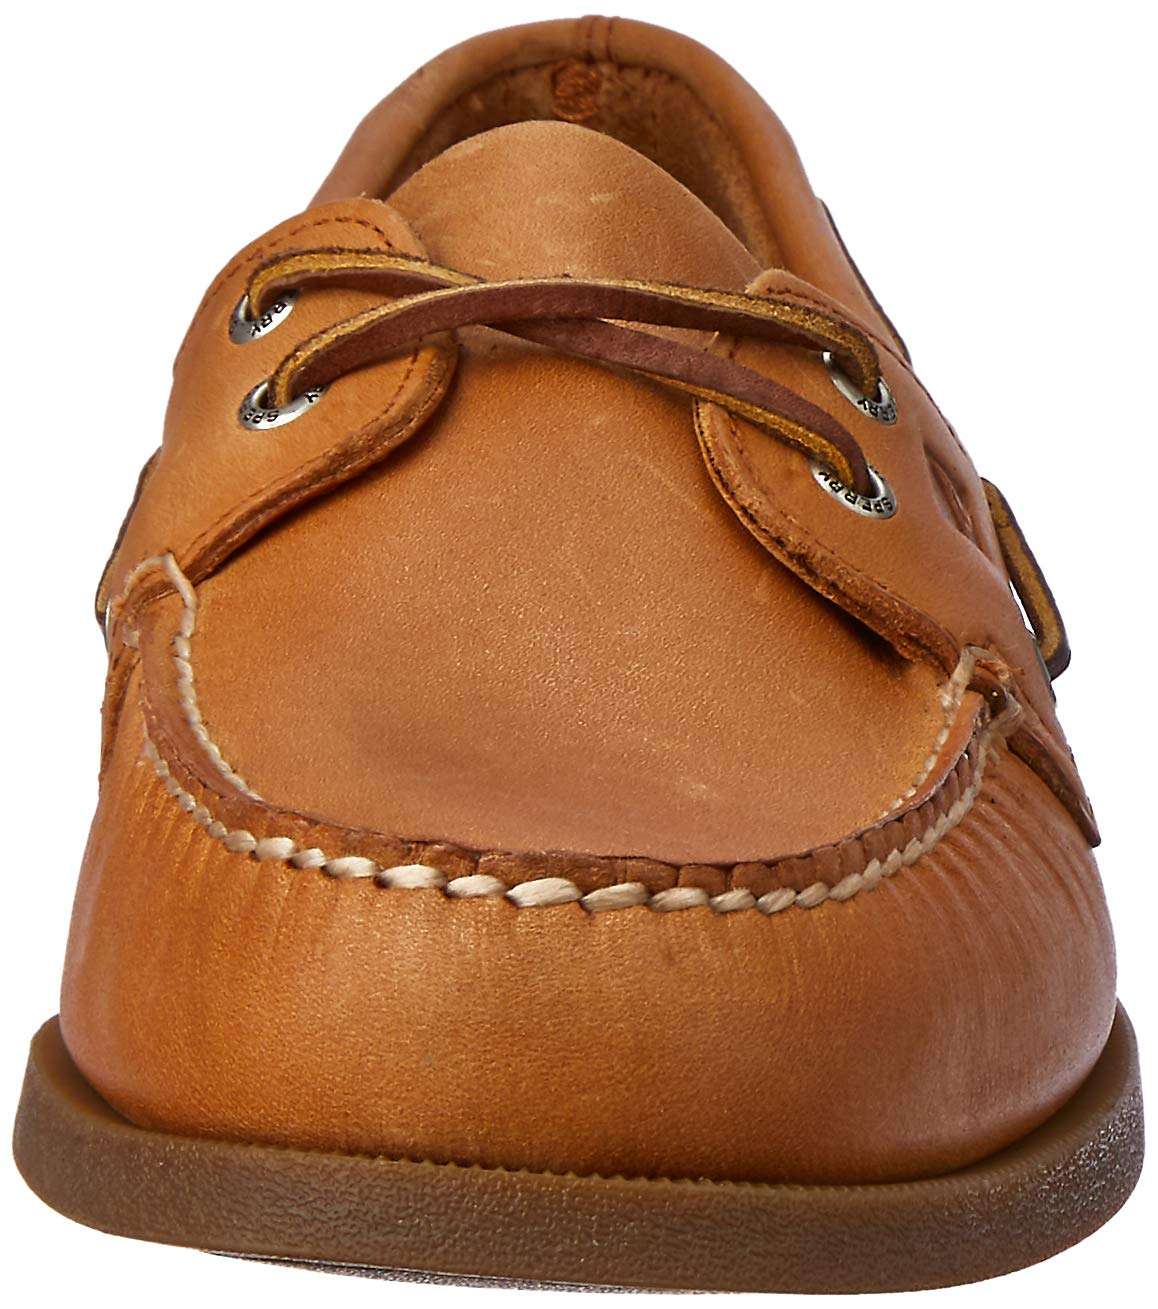 Sperry Top-Sider Authentic Original Leather Boat Shoe Men 13 Sahara Leather by SPERRY (Image #4)